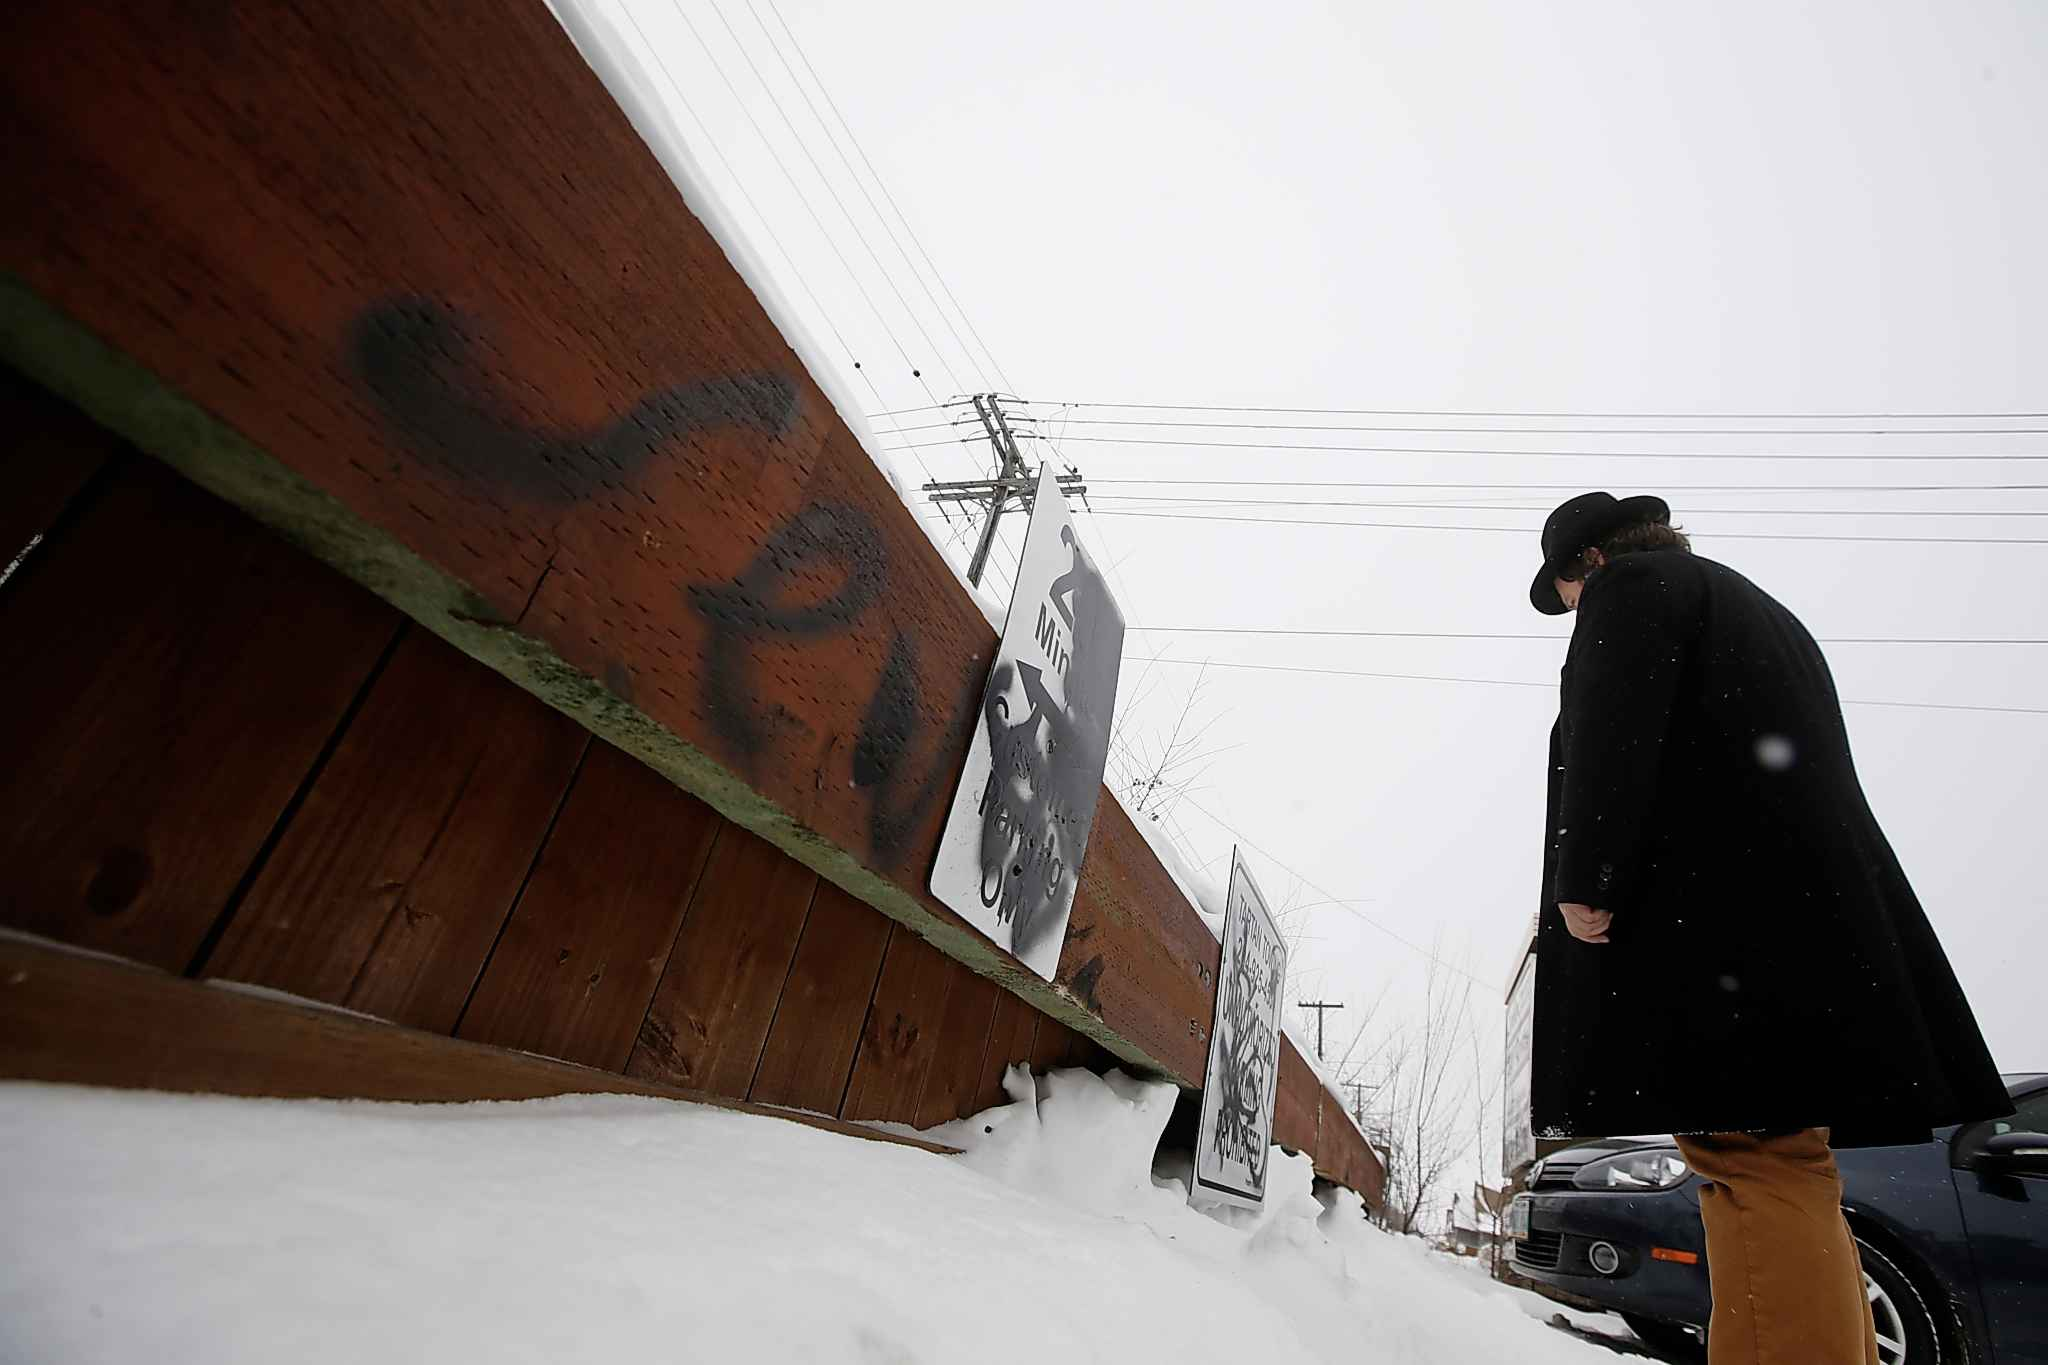 JOHN WOODS / WINNIPEG FREE PRESS</p><p>This is the second time in the last month Berent has been a victim of anti-Semitic graffiti. The police are investigating the incident as a hate crime.</p>